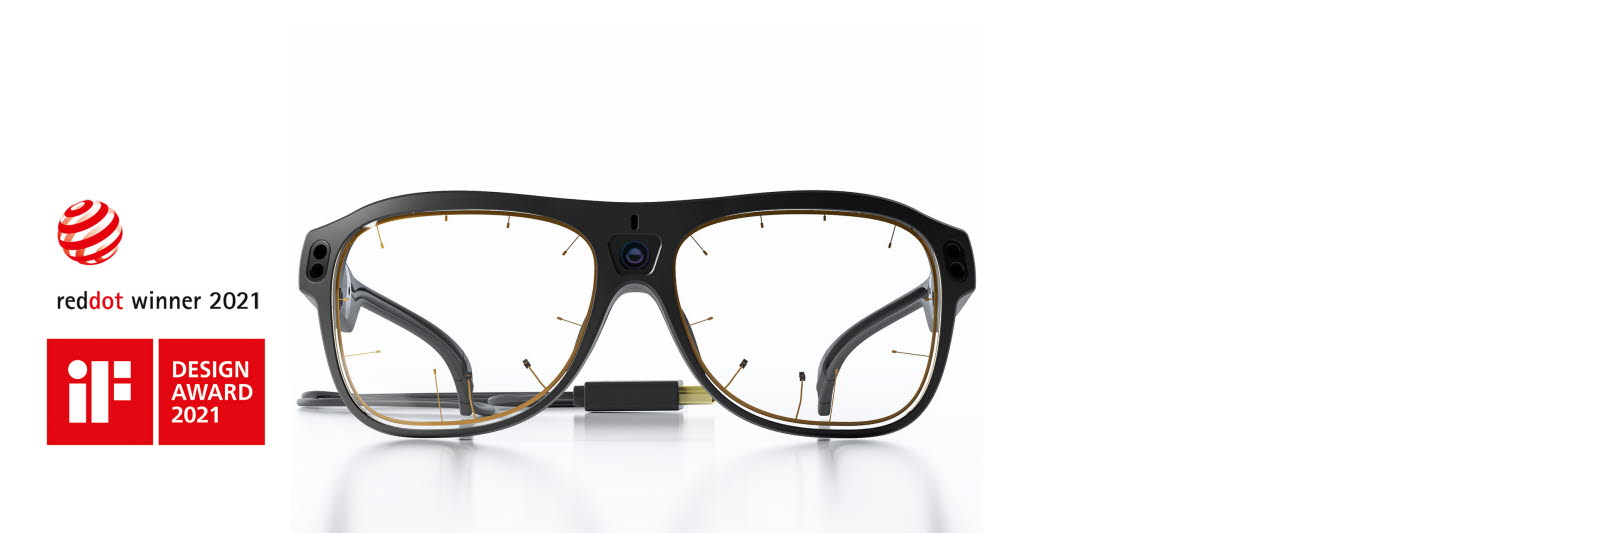 Tobii Pro Glasses 3 - IF Design award and Reddot Winner 2021